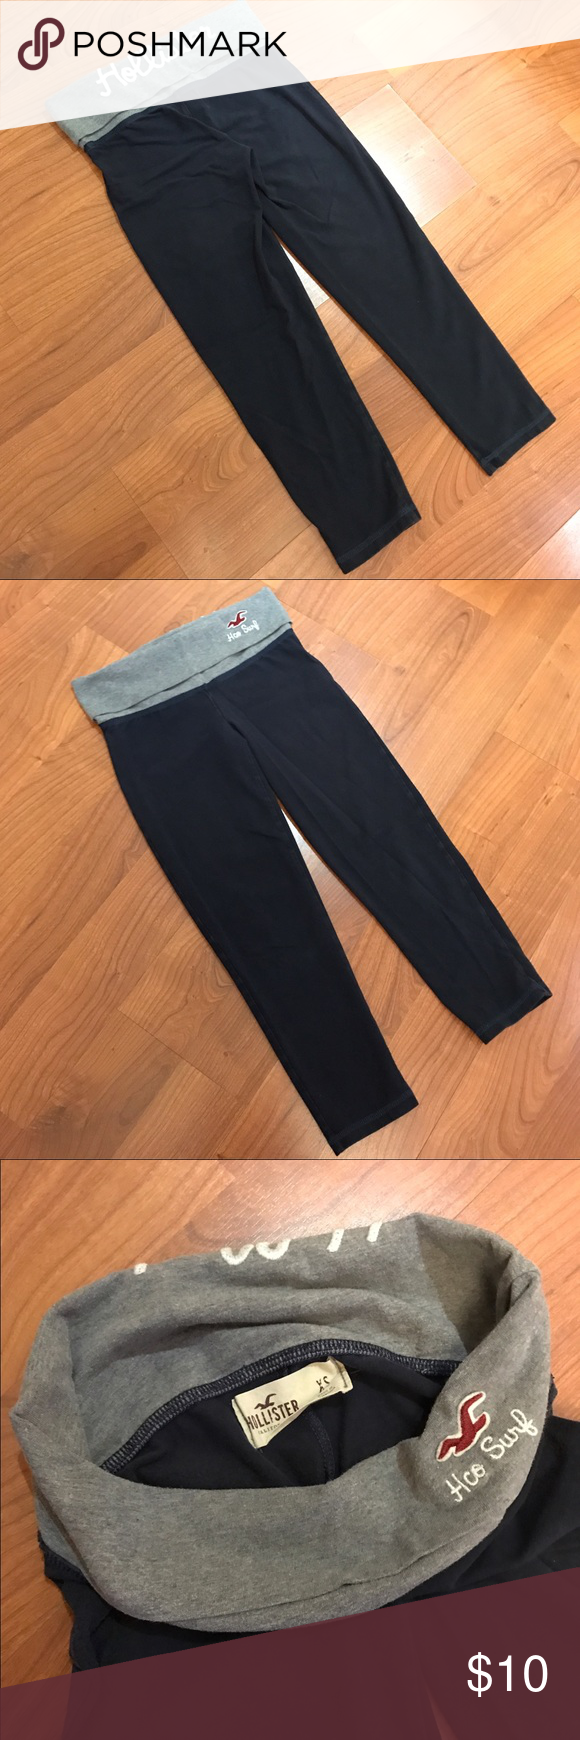 Capri yoga pants Capri length jersey yoga pants. Navy color with rolled down grey waistband. Hollister Pants Capris